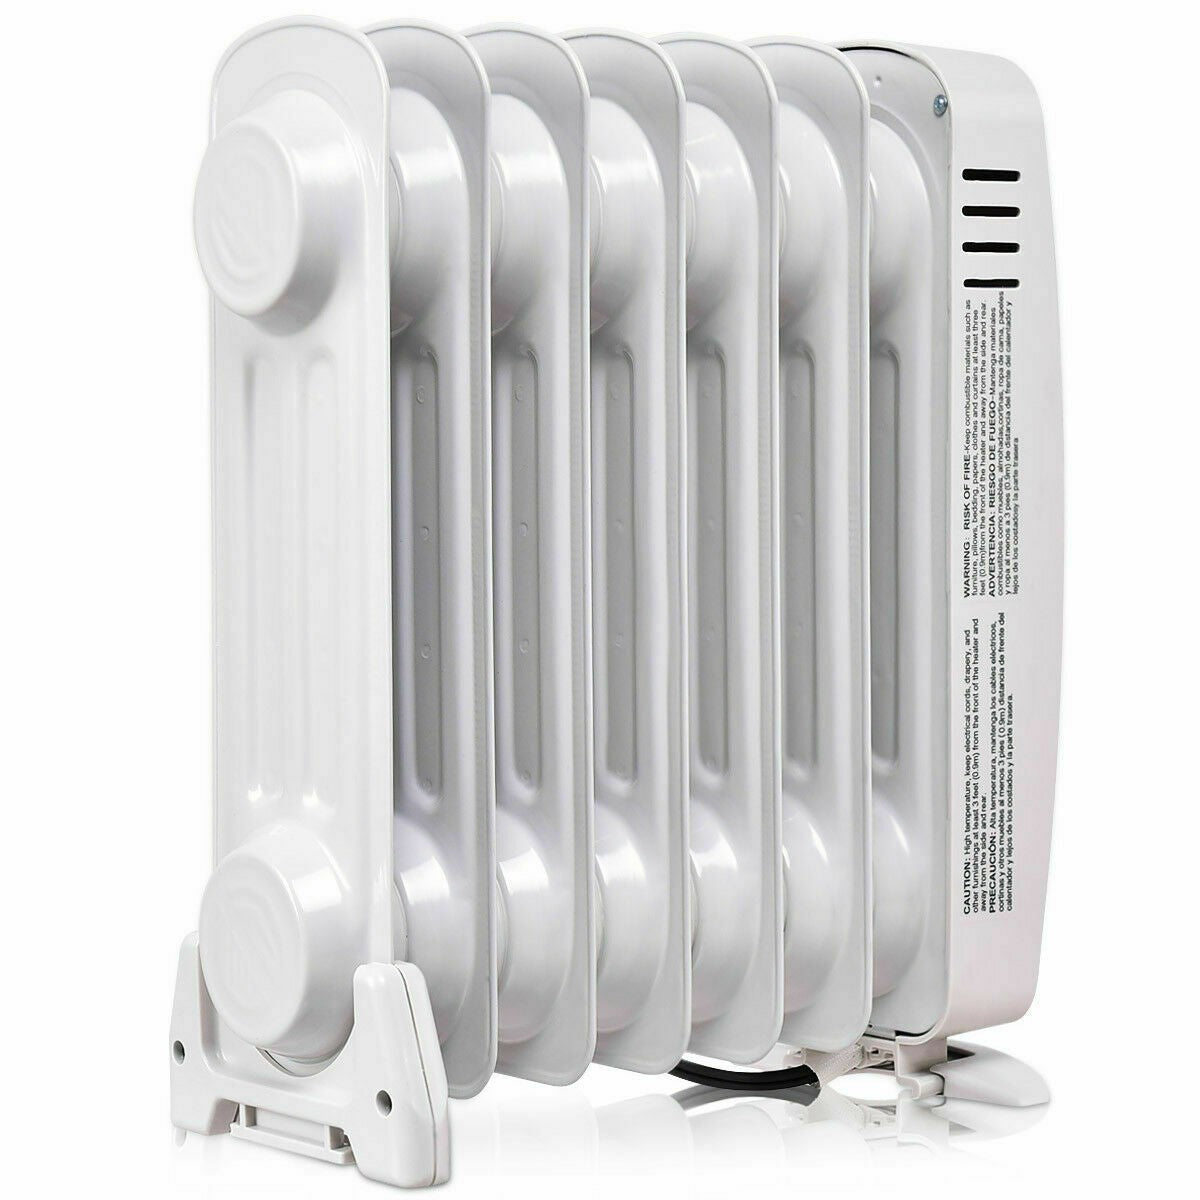 Portable Mini Oil Filled Radiator Electric Oil Thermostat Heater - Morealis